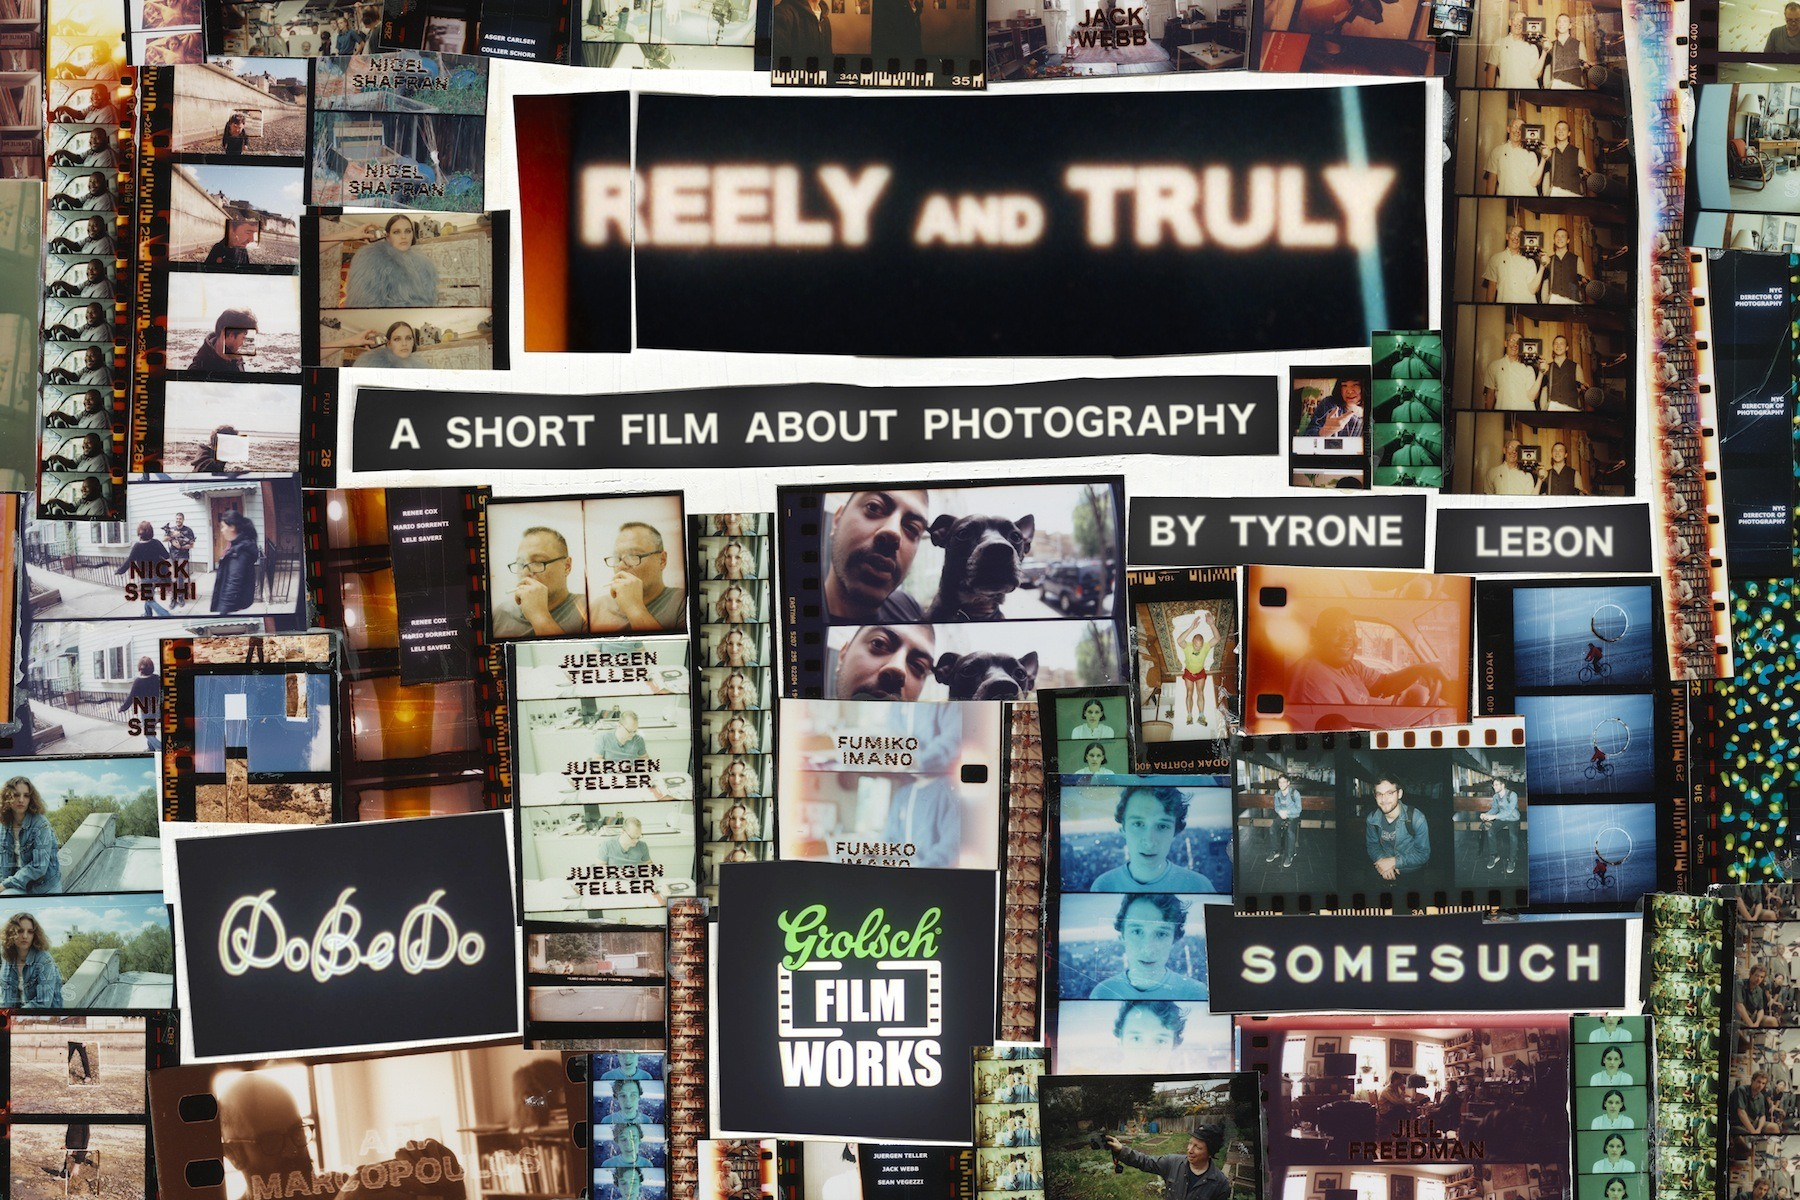 2014_09_08_Reely-and-Truely-Poster-CROP-20